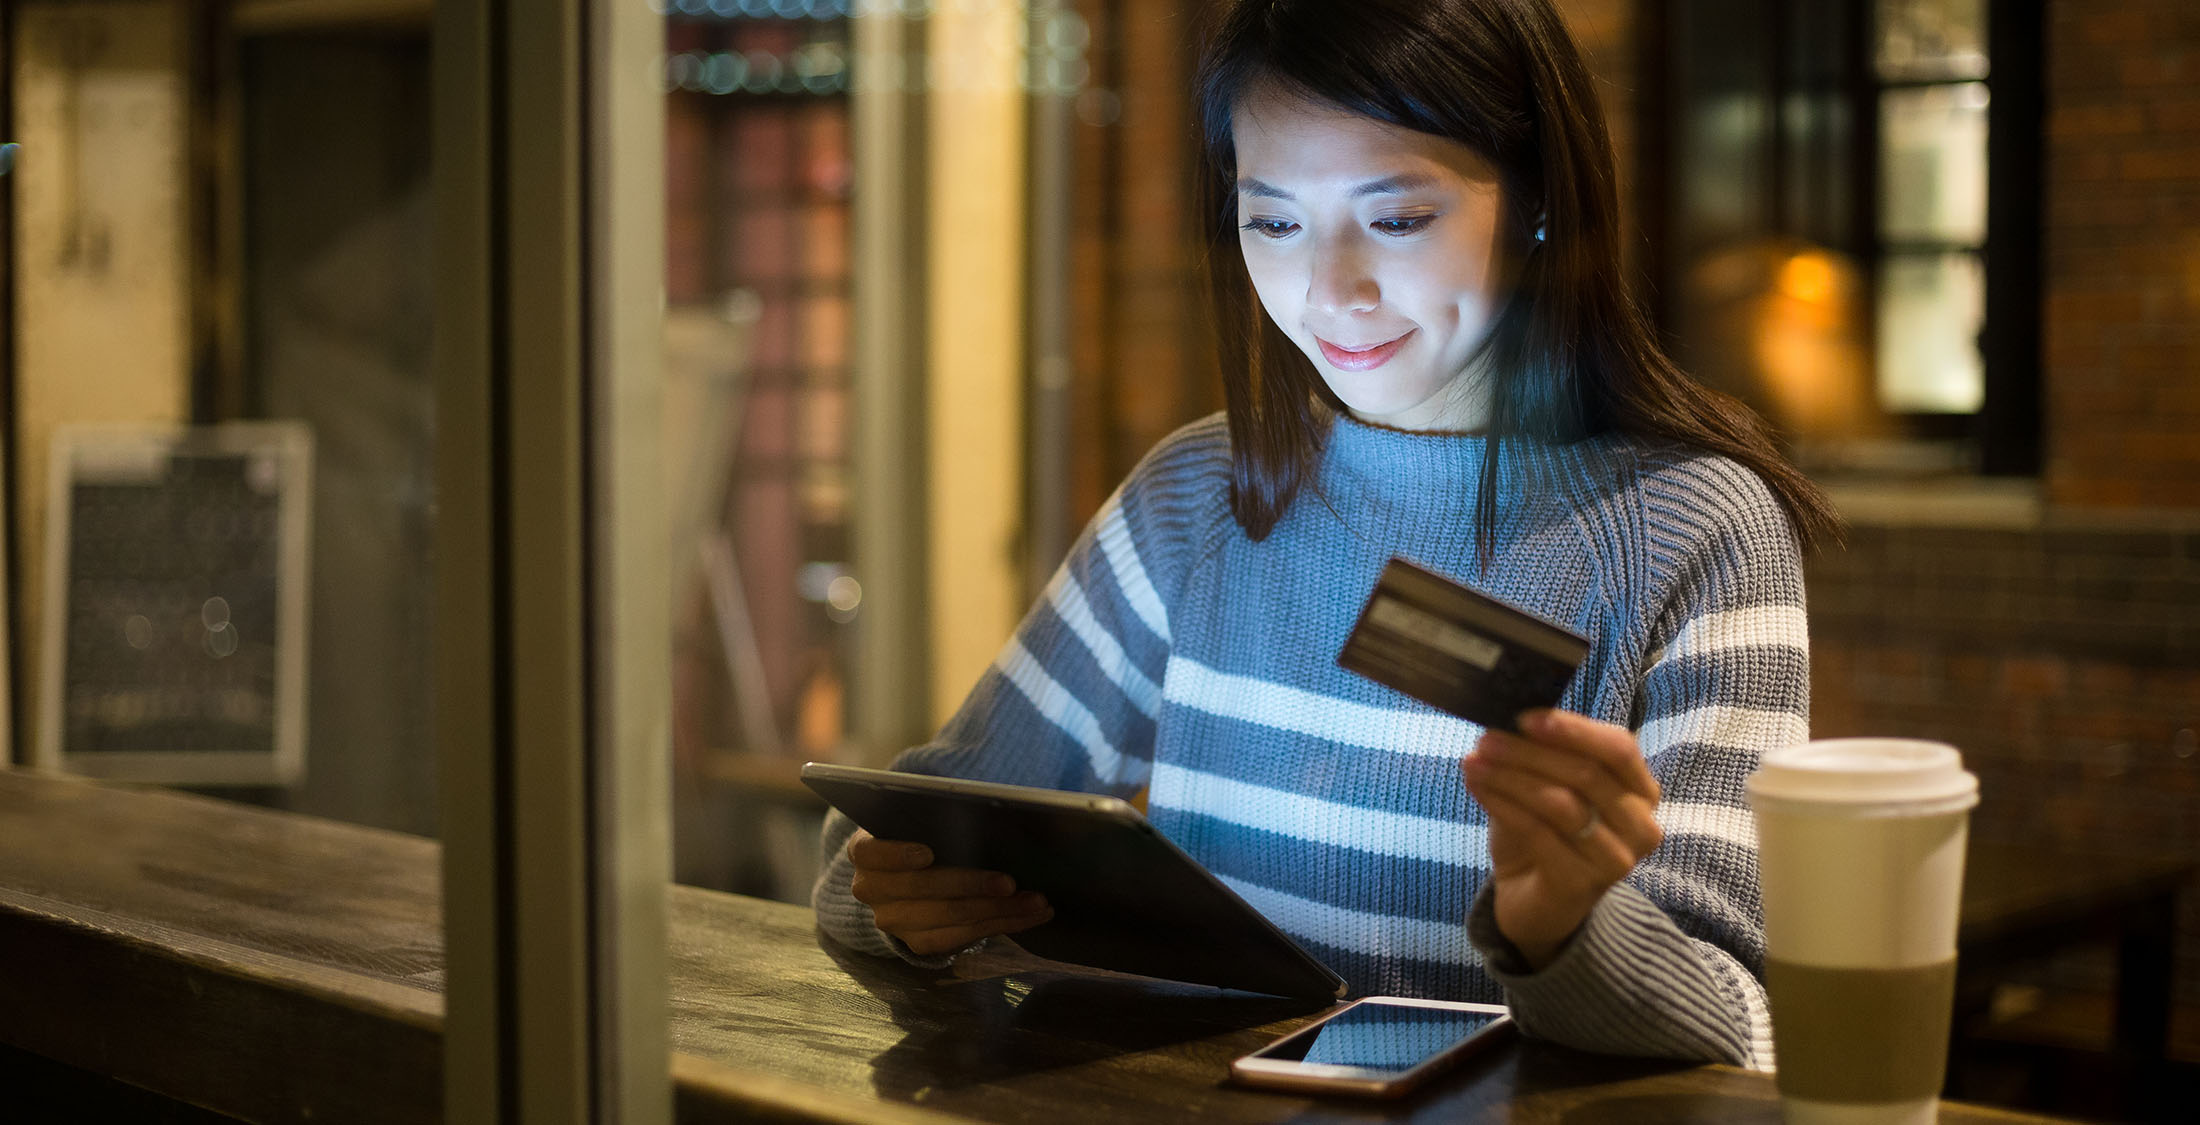 woman with ipad and credit card